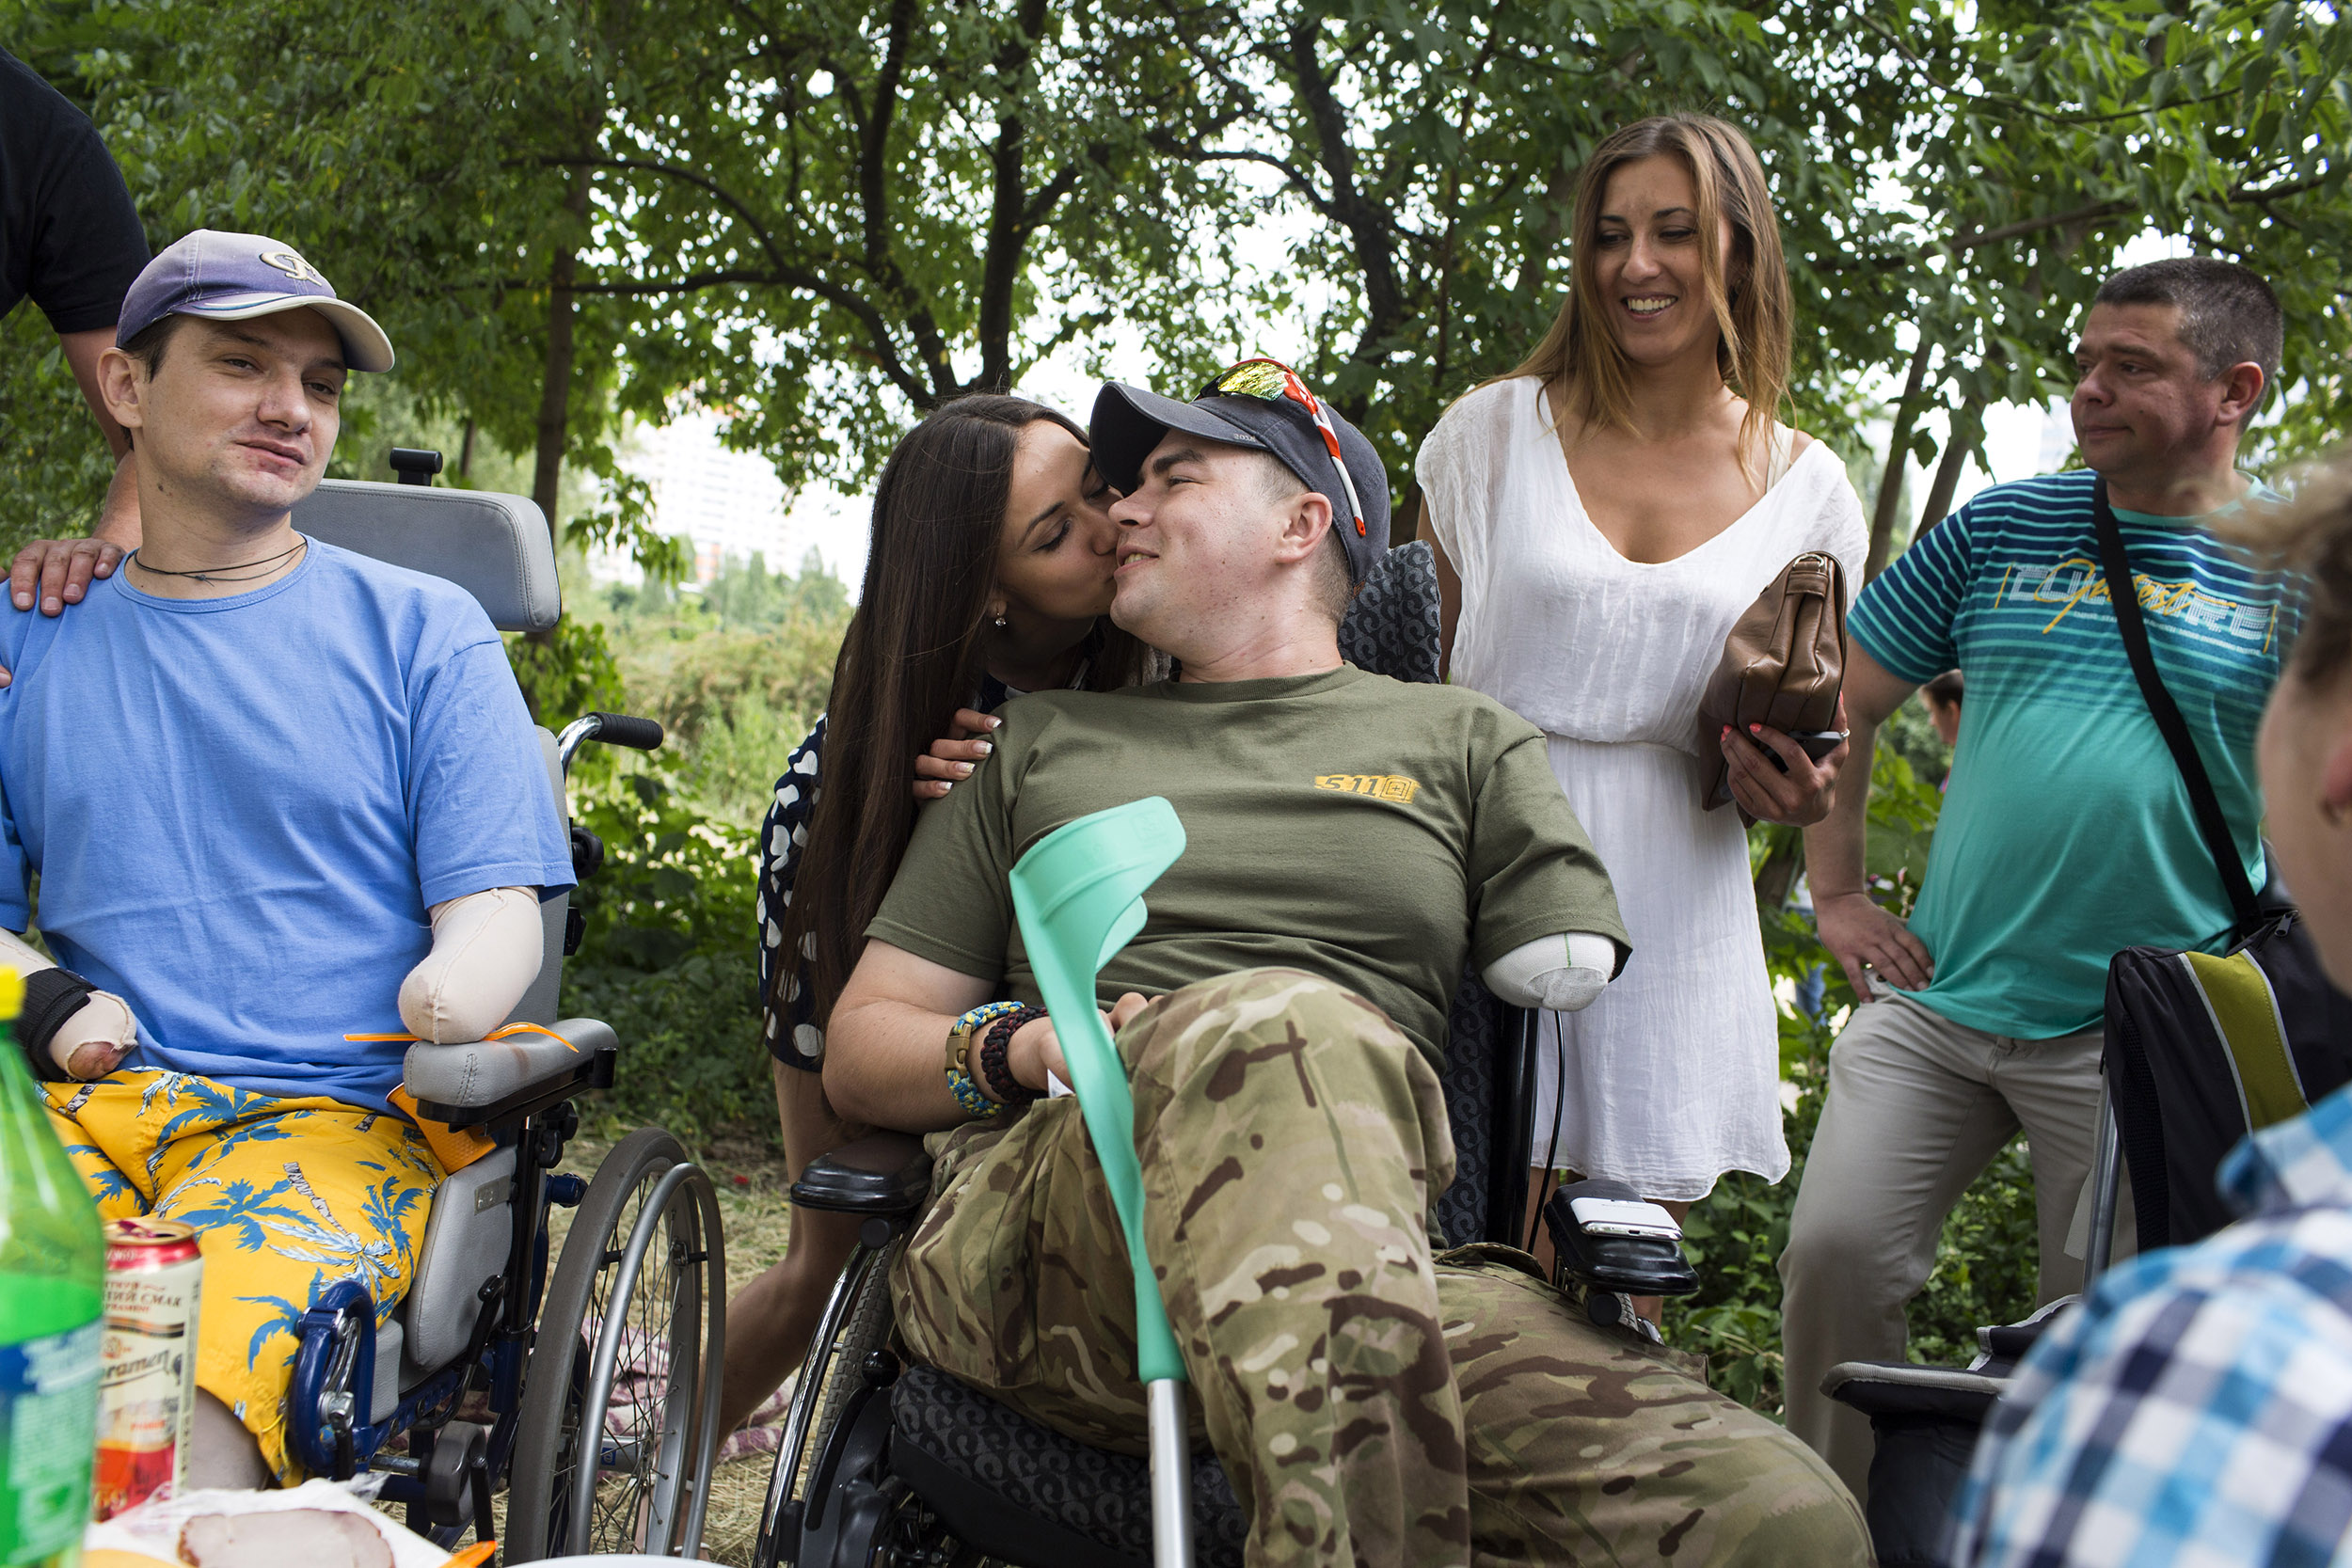 Dovhoruk celebrates his 24th birthday with friends and volunteers in a park near the city burn center where he is undergoing treatment in Kiev, June 21, 2015. As of February 2016, he is walking on prosthetic legs and training his arm to be fitted for a prosthetic. Dovhoruk is enrolled at a university and studying to become a psychologist; his intention is to work with combat veterans.